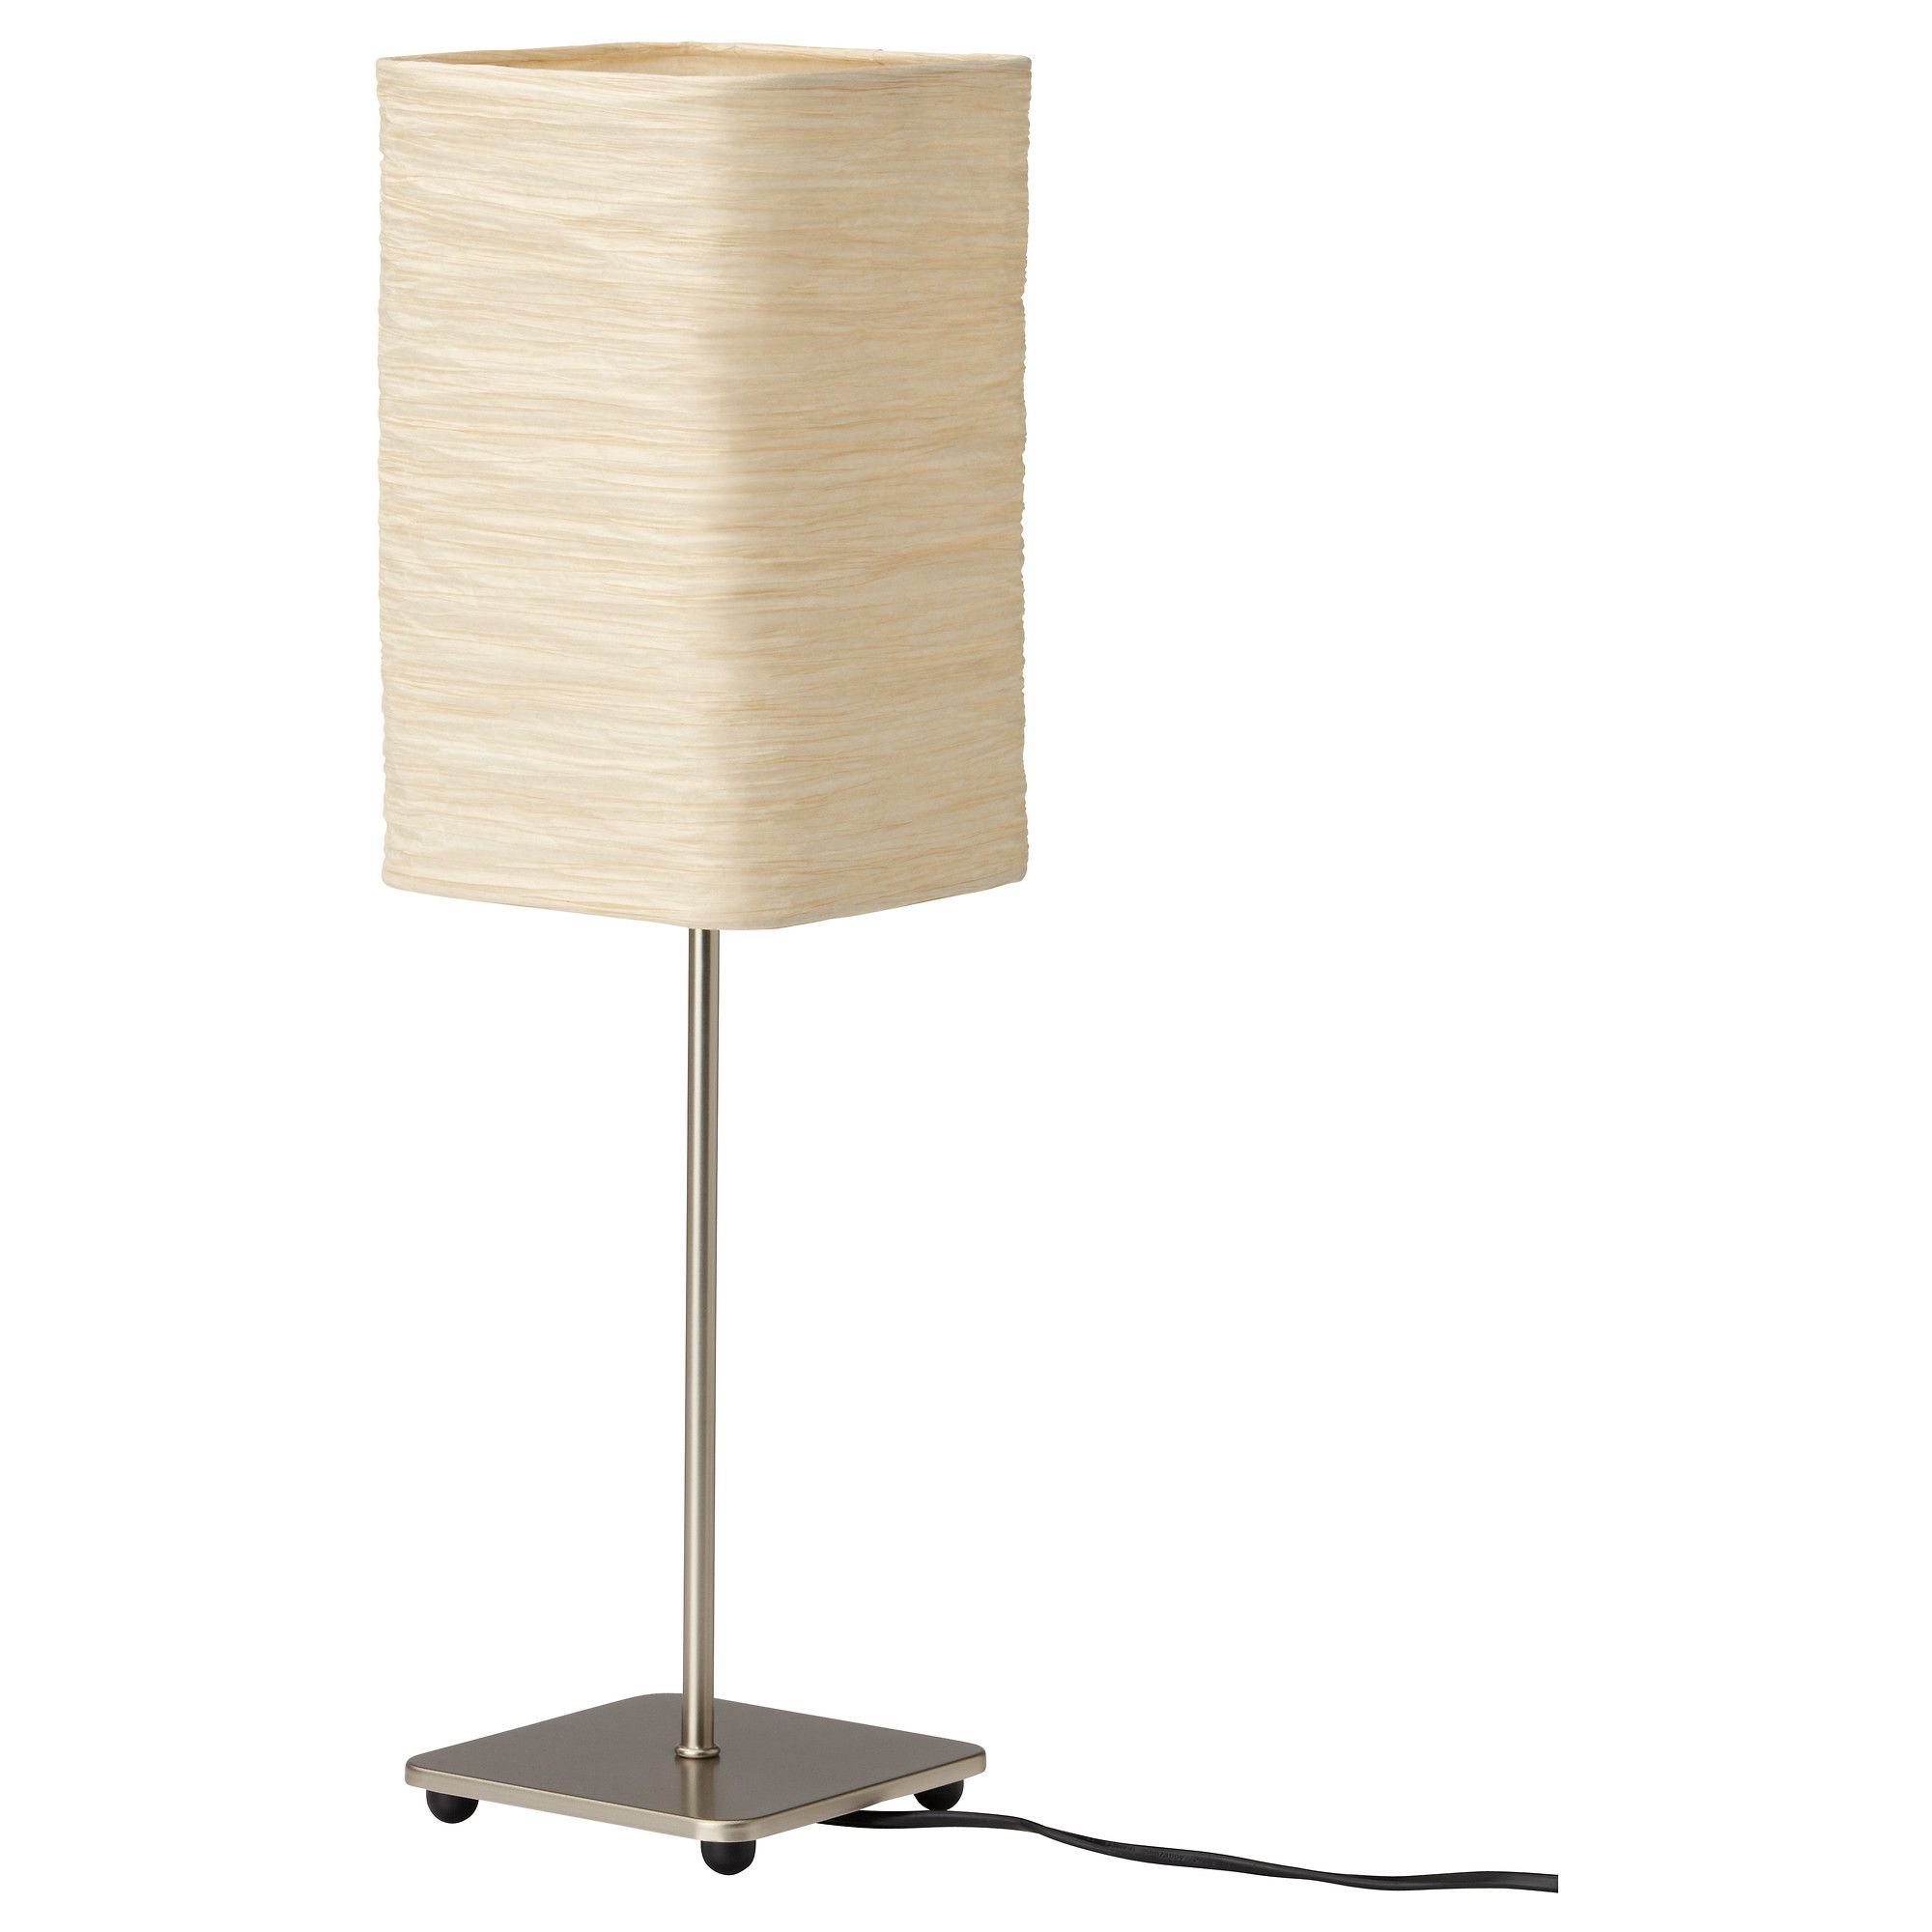 Tischleuchten Ikea Magnarp Table Lamp 50 Cm Ikea Ikeadreambedroom